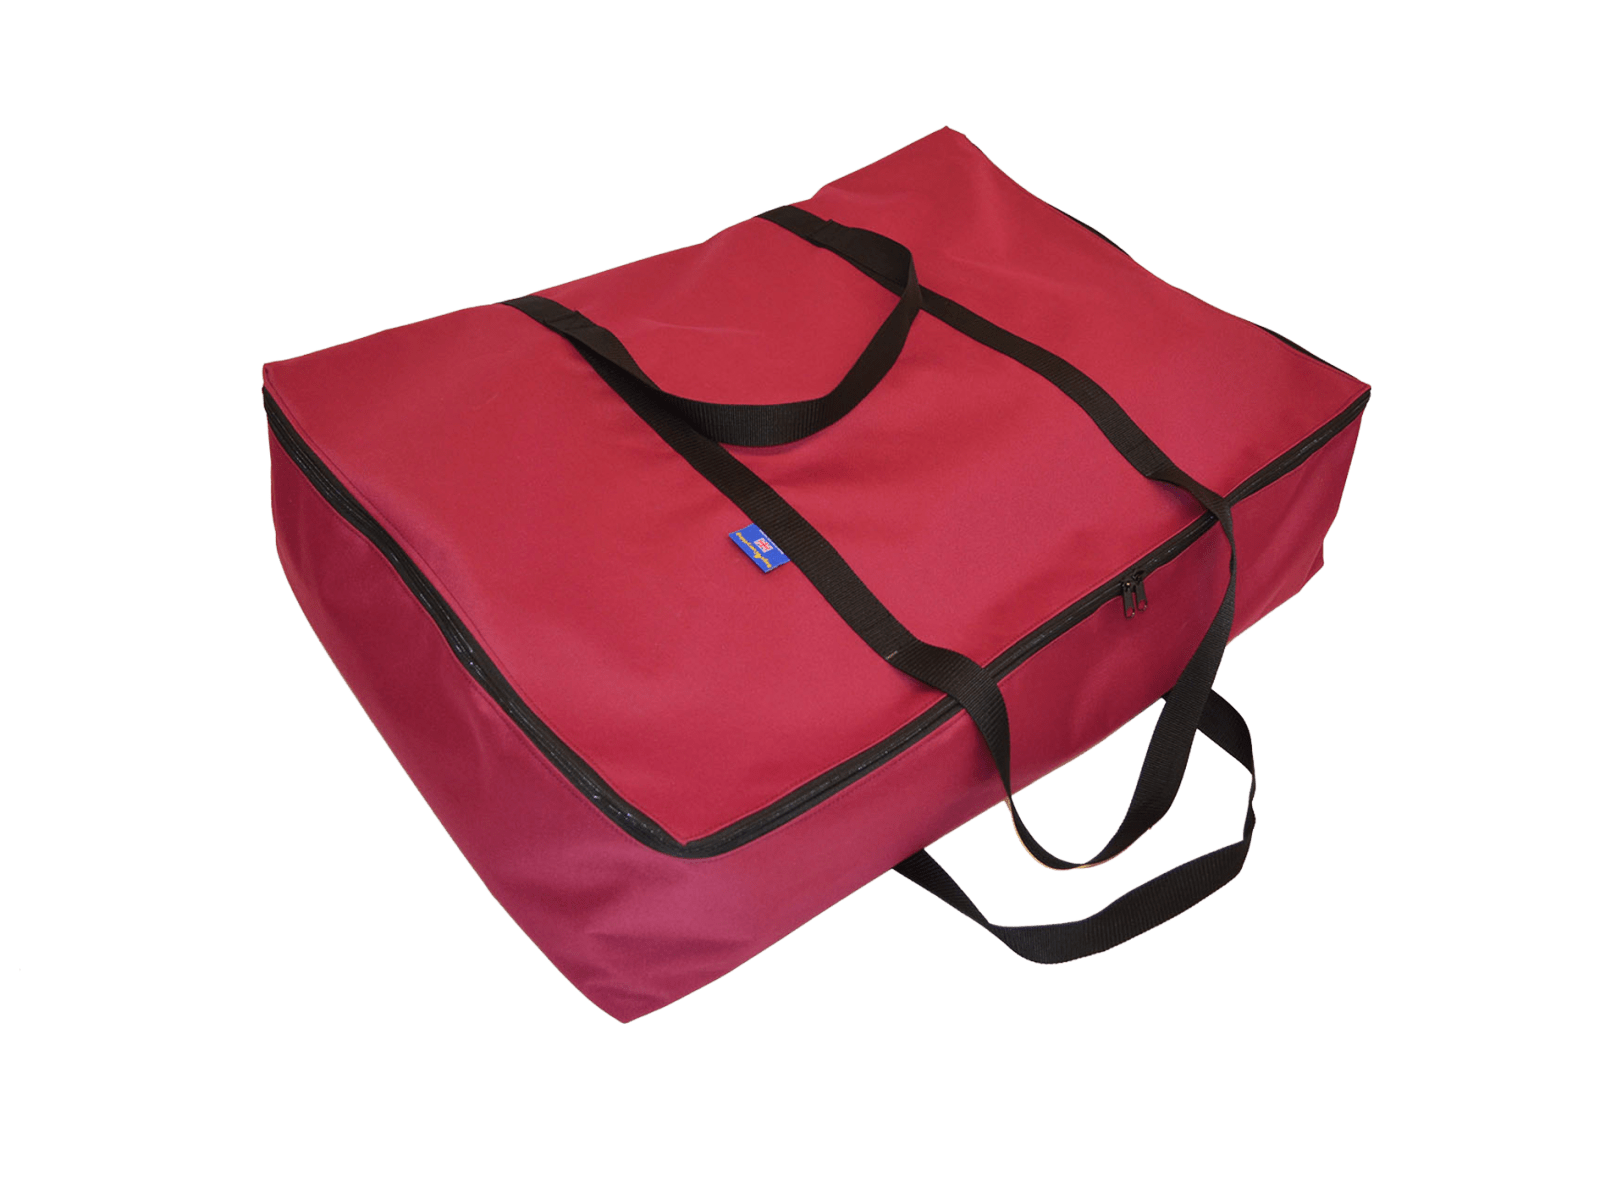 Awning Bag Cover Medium Waterproof With Zip And Handles